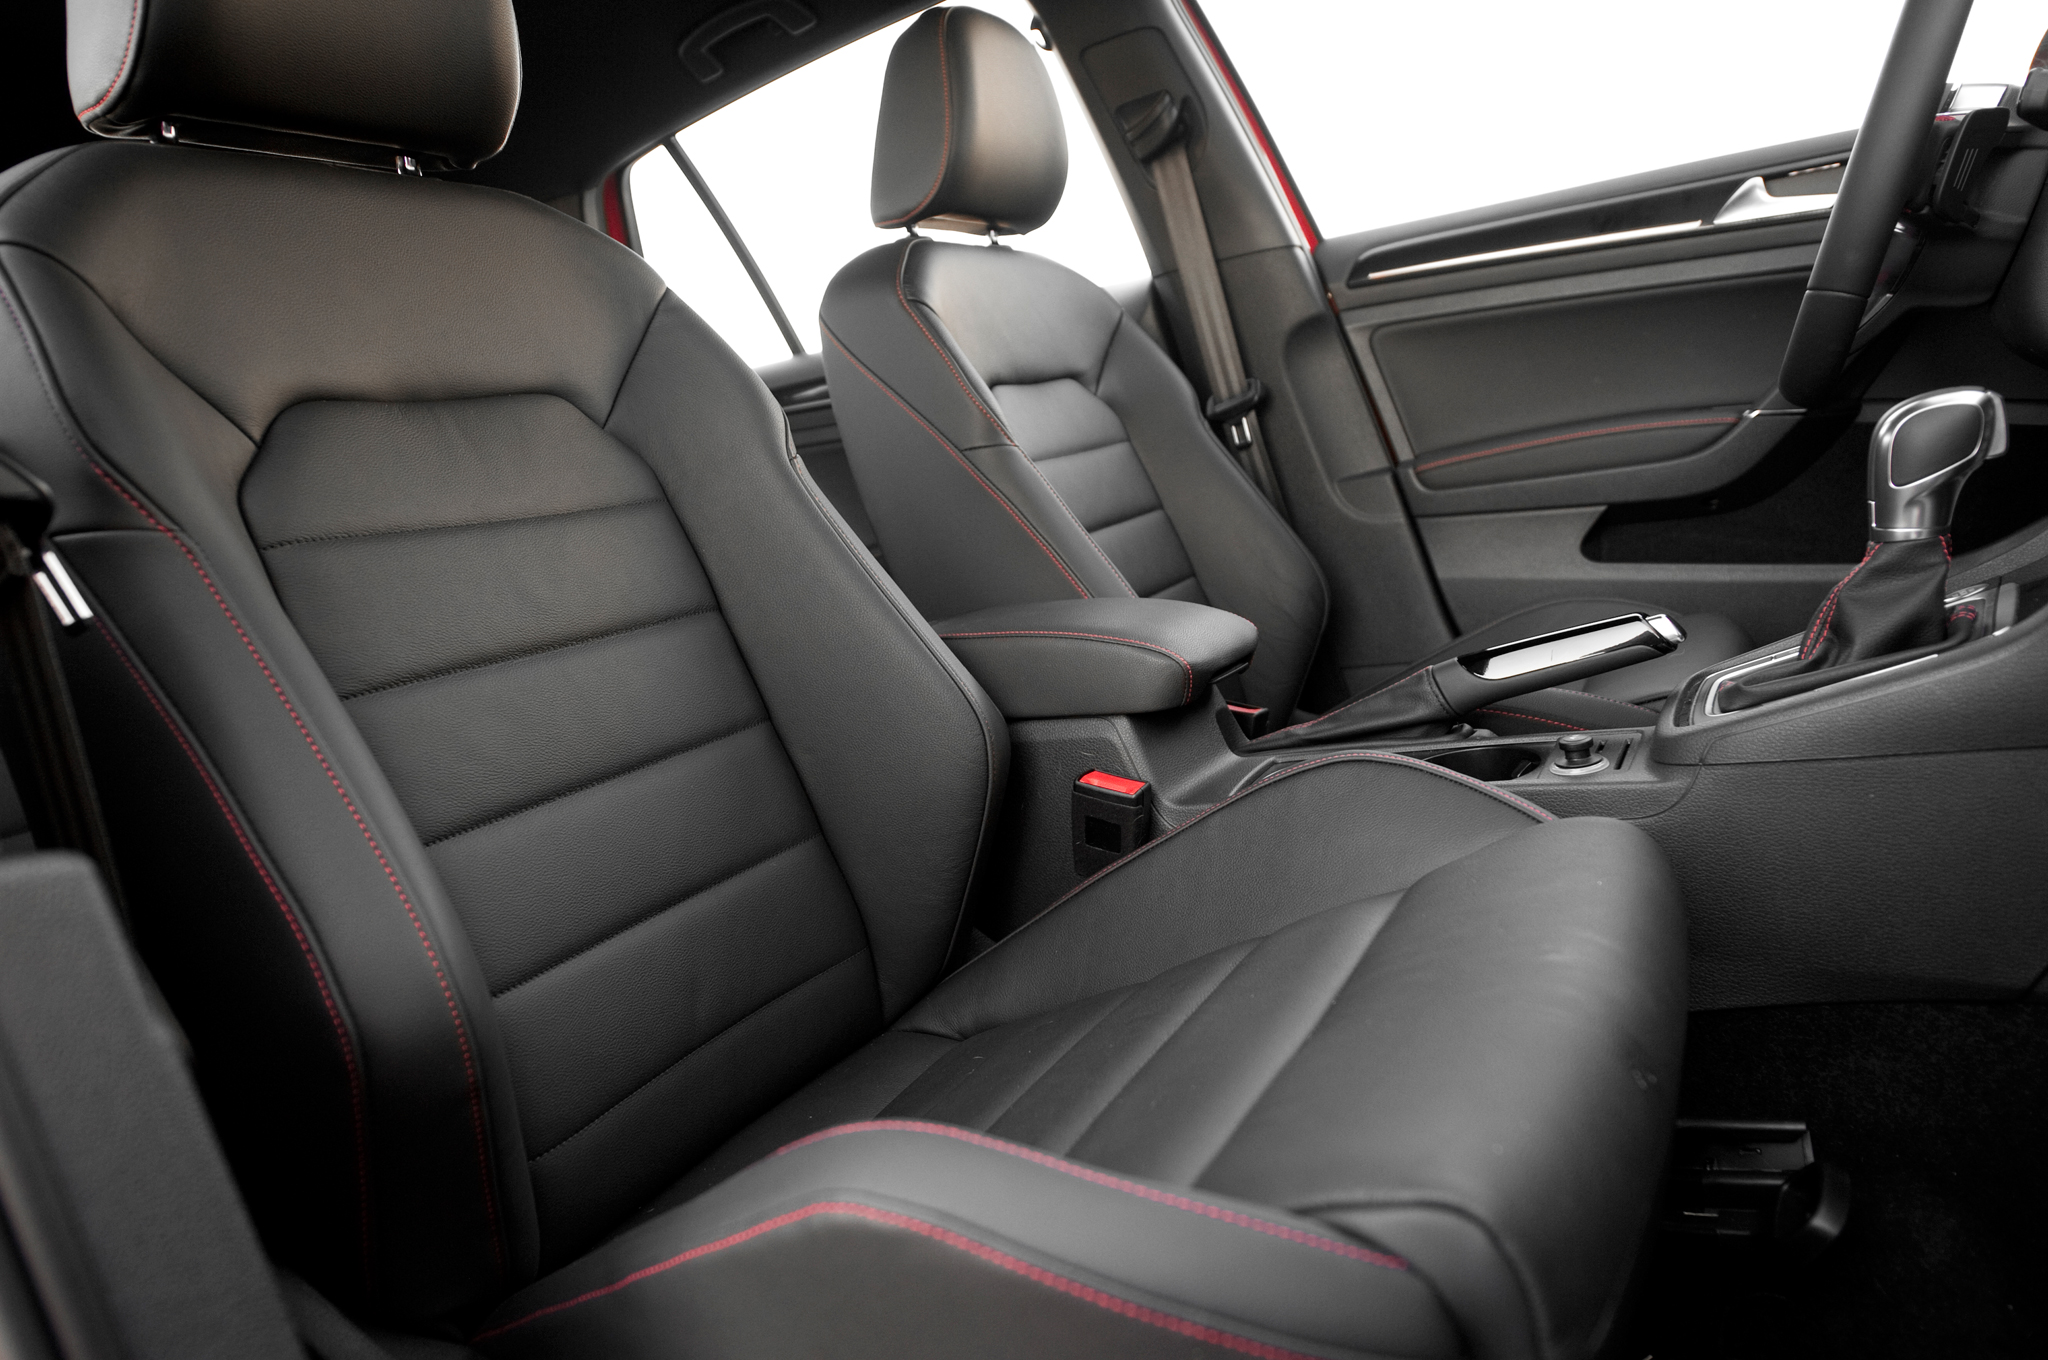 2015 Volkswagen Golf Gti Front Seats Interior (Photo 47 of 55)